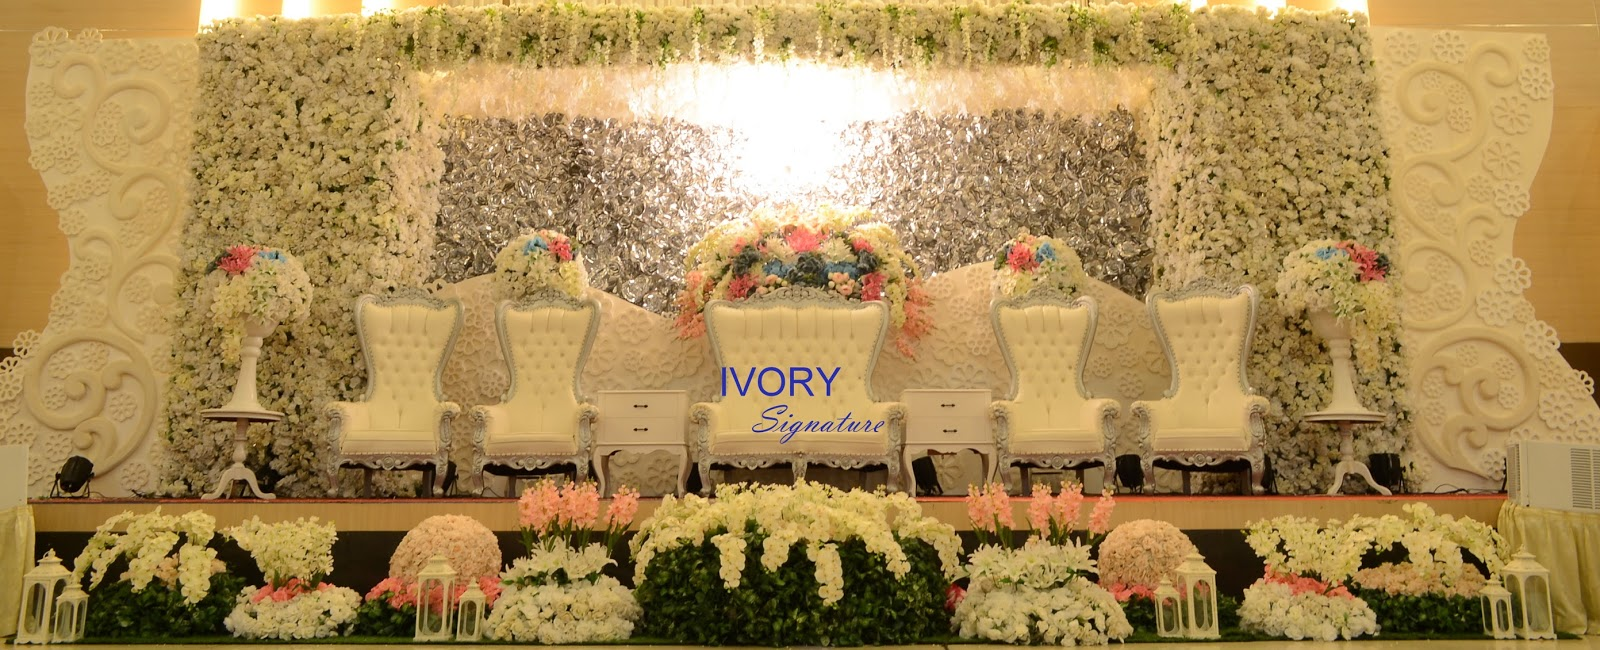 Ivory signature catering and decoration by ivory signature fenty figgy wedding sunday august 30th 2015 balai sartika bikasoga bandung junglespirit Choice Image